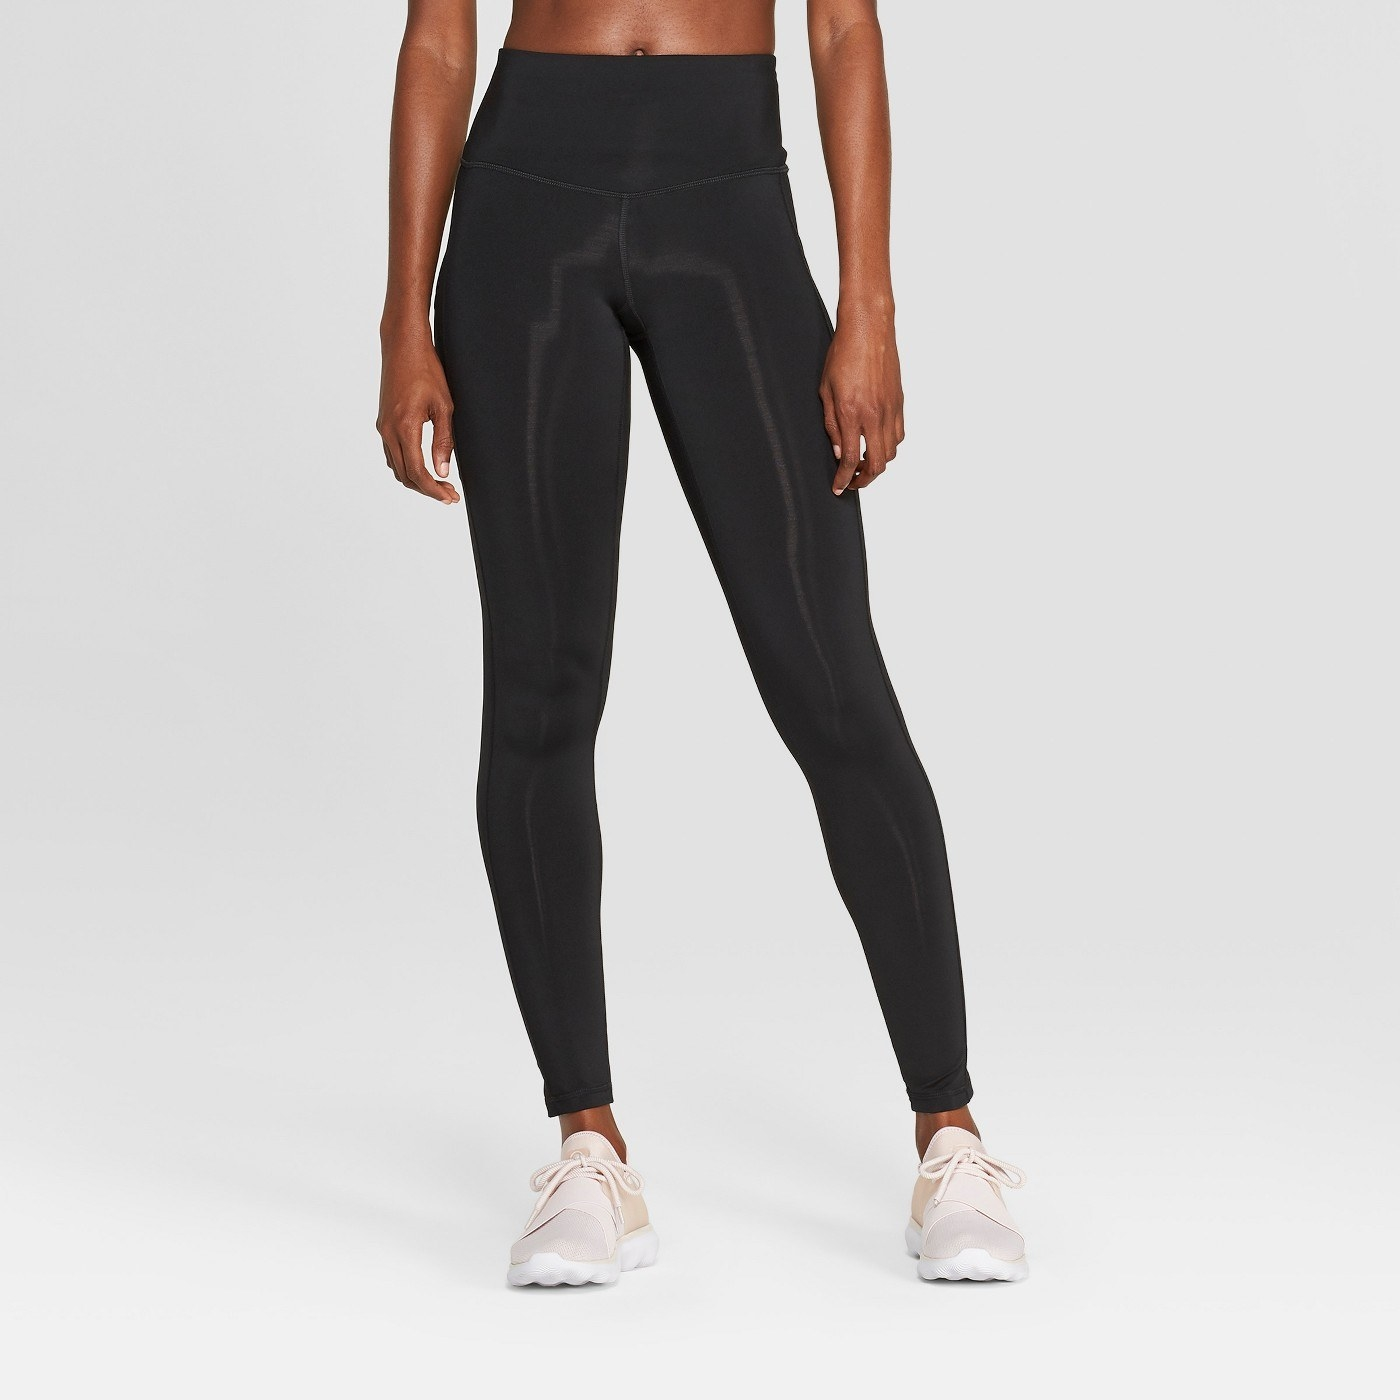 cc3bb01f2d Champion C9 Leggings move with you during periods of high activity and are  made with soft, breathable fabric so you won't feel overheated during leg  day.